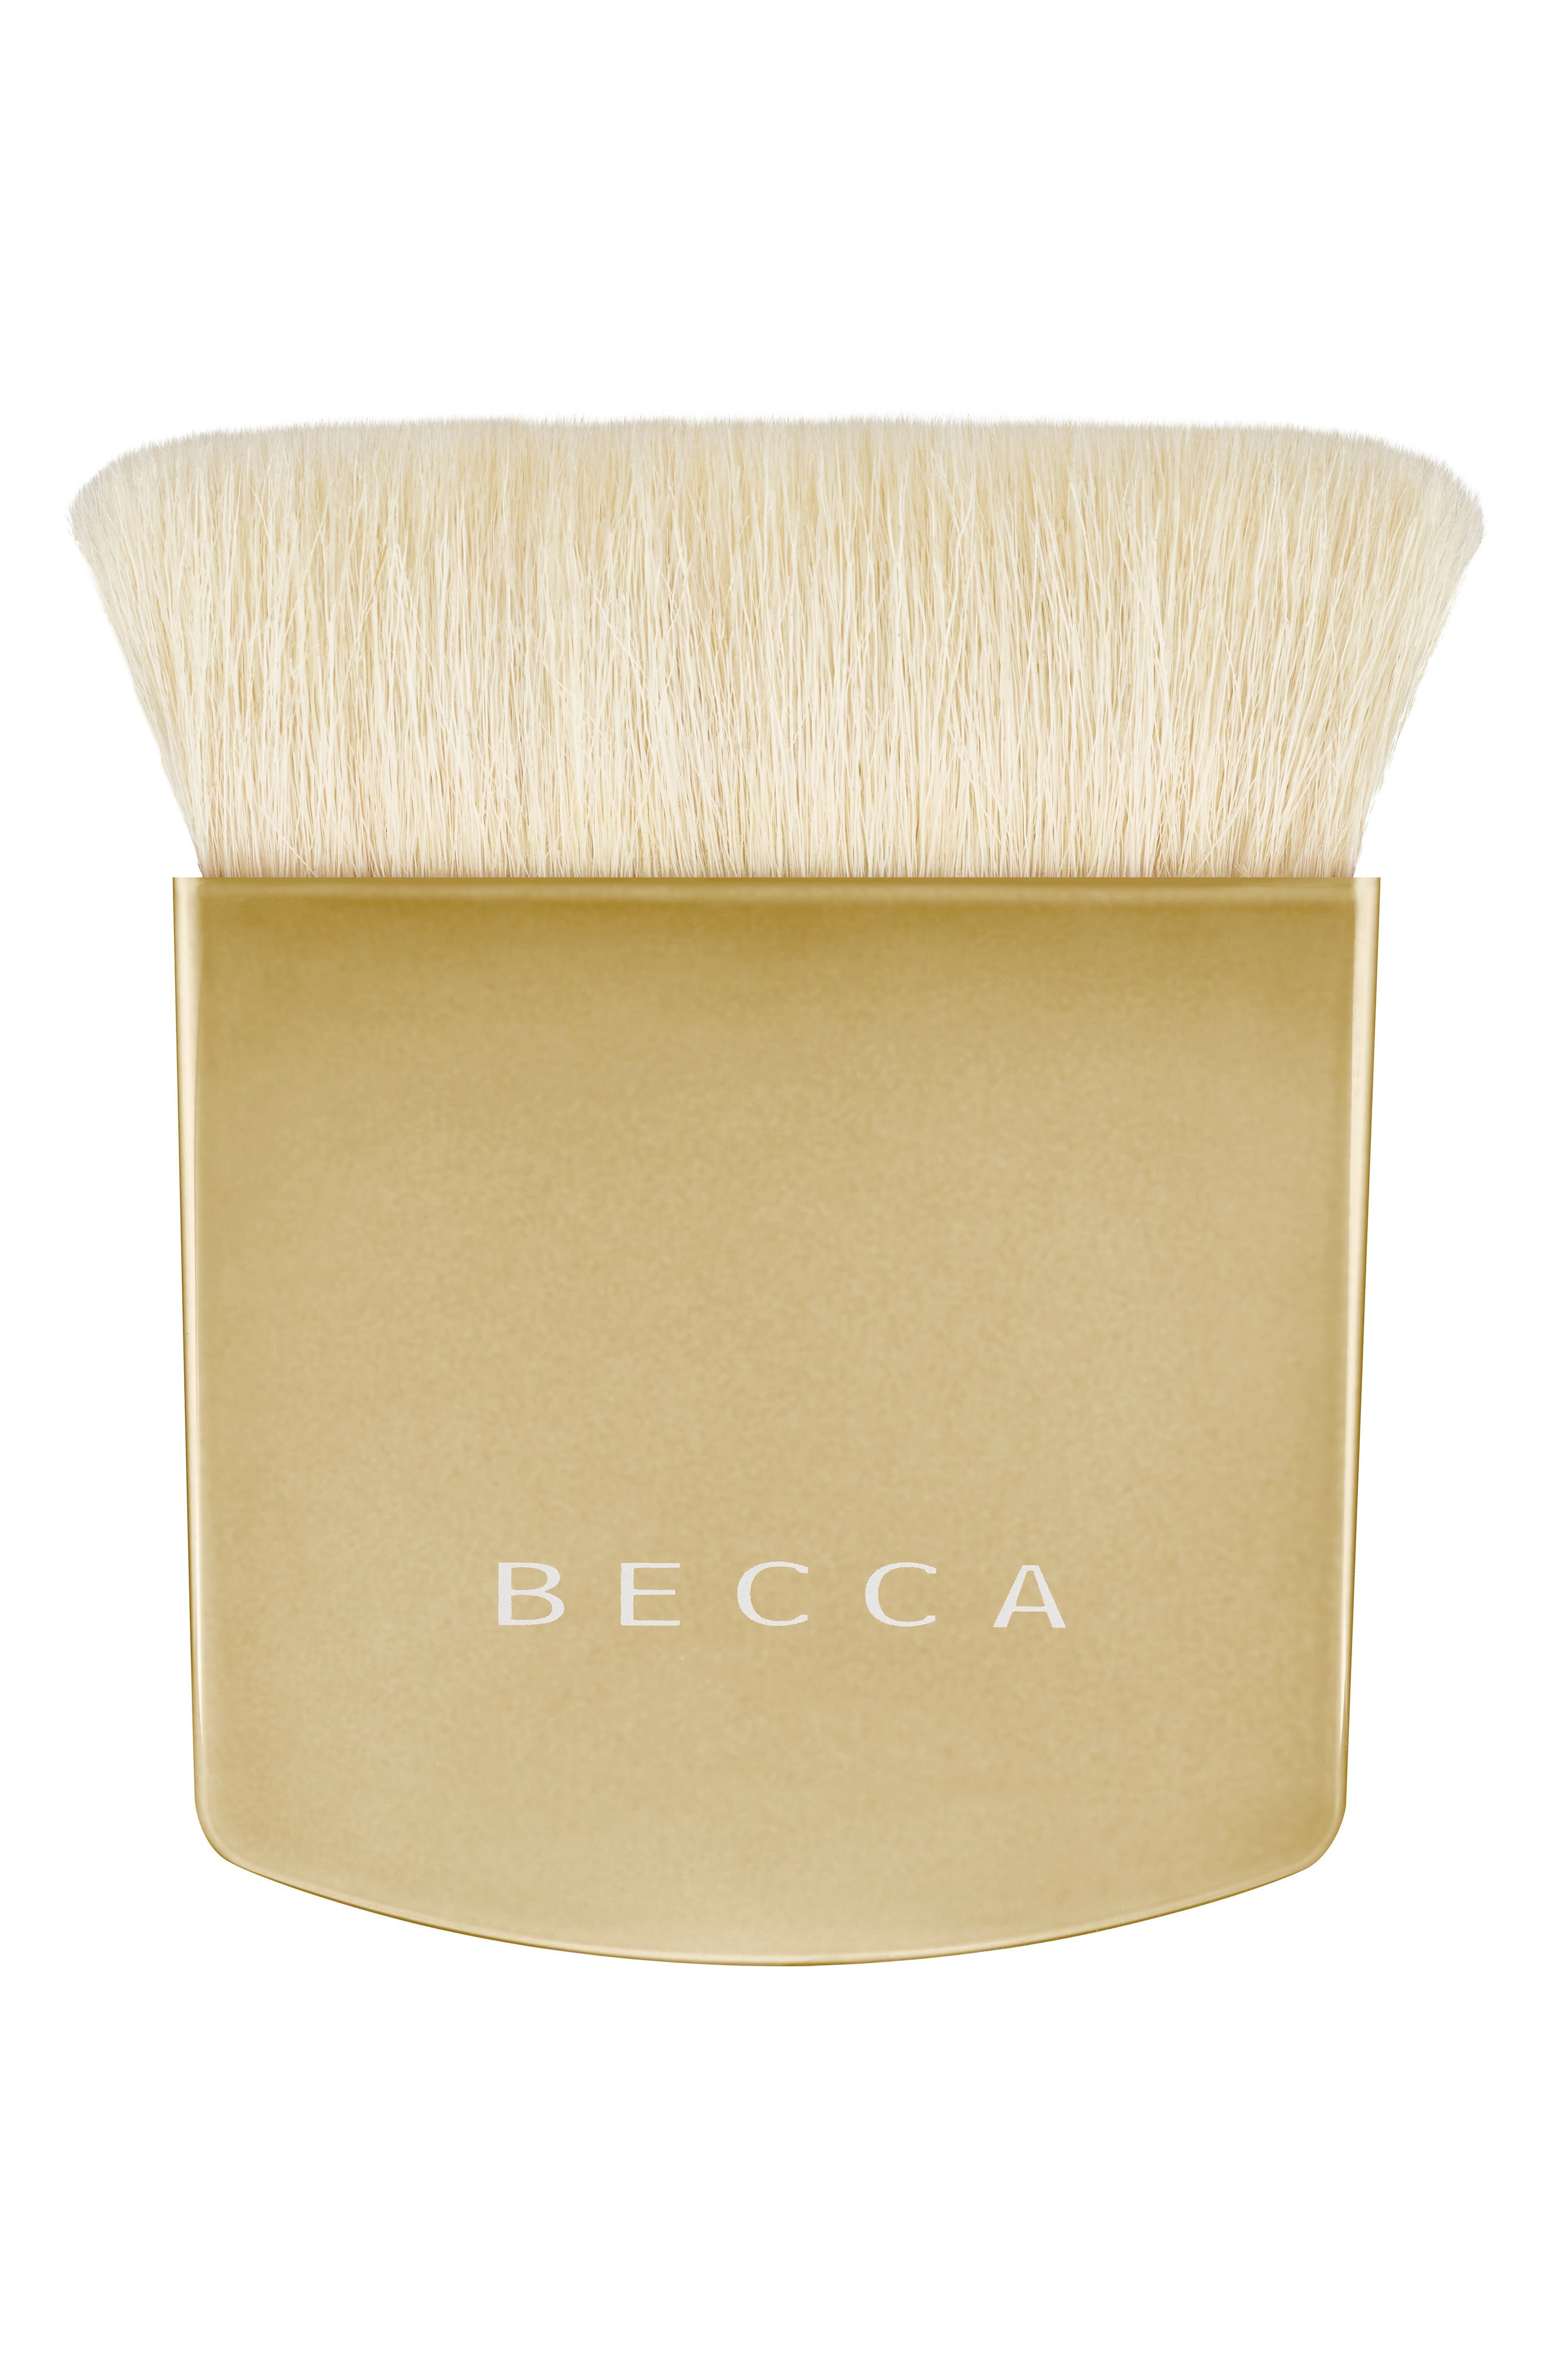 BECCA The One Perfecting Brush,                             Alternate thumbnail 2, color,                             NO COLOR